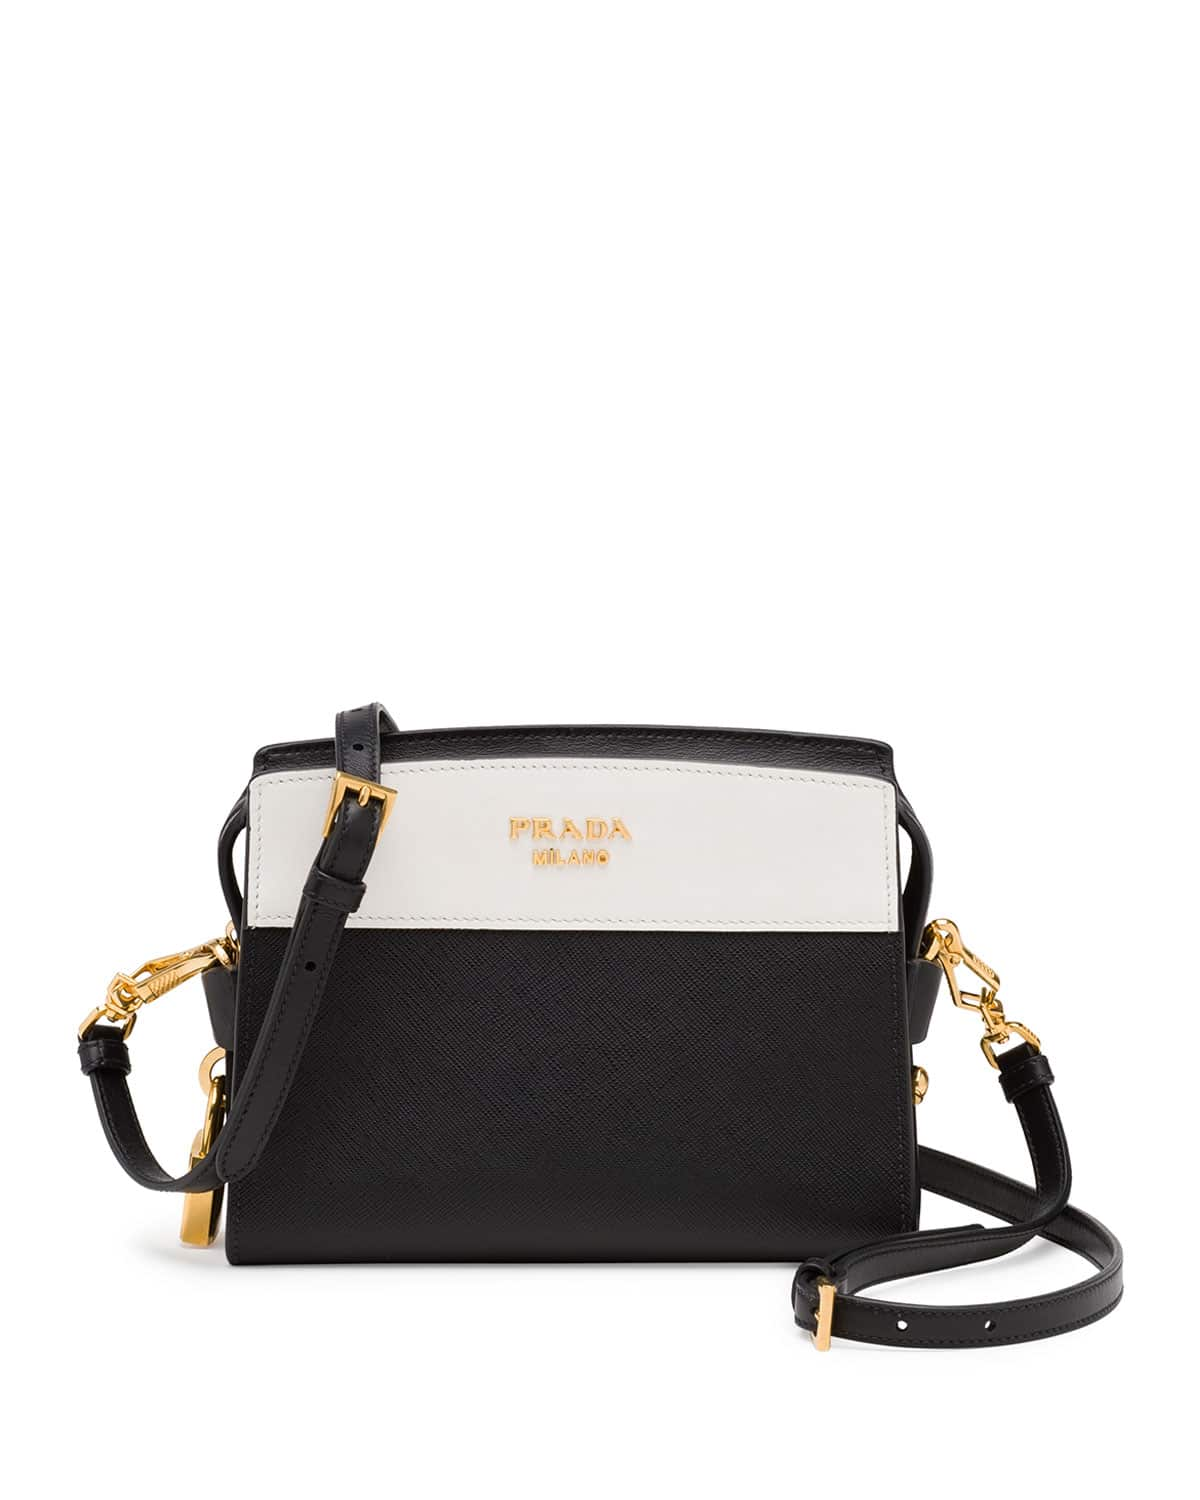 a4bc4f149d45 Prada Black White Esplanade Shoulder Bag